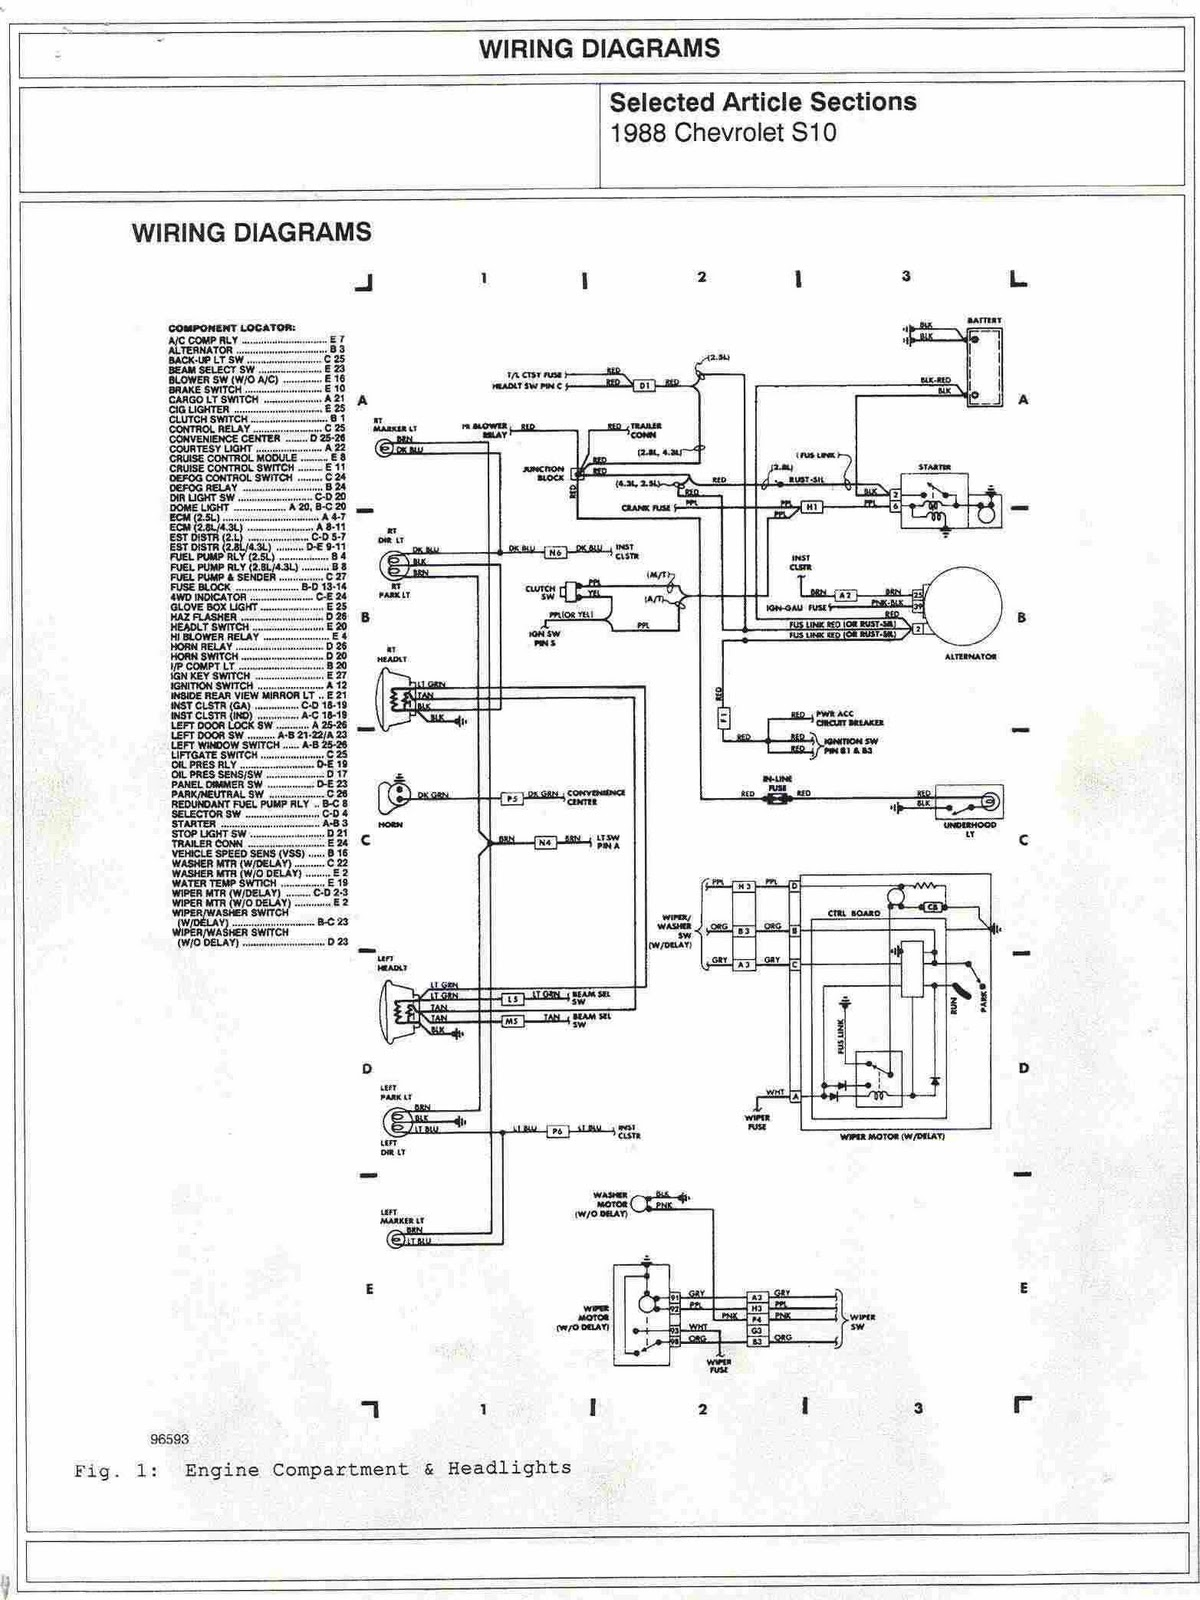 2011 | All about Wiring Diagrams